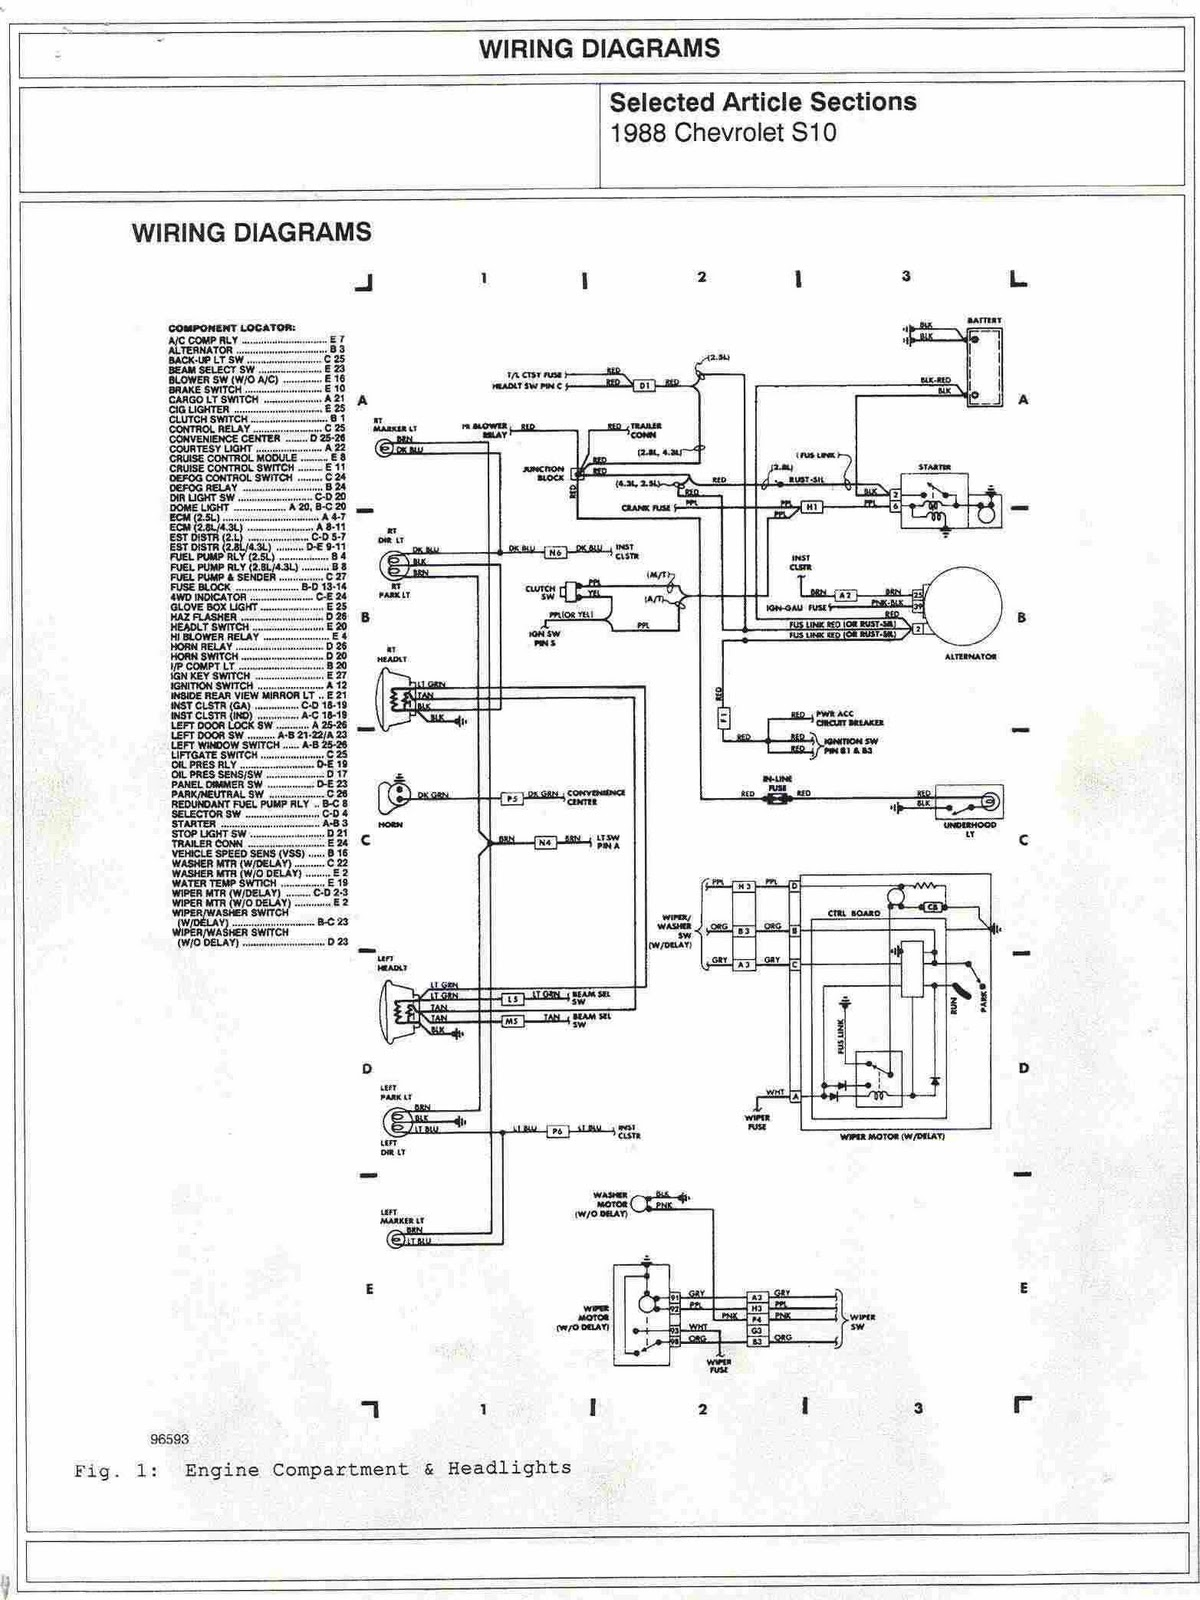 2011 | All about Wiring Diagrams